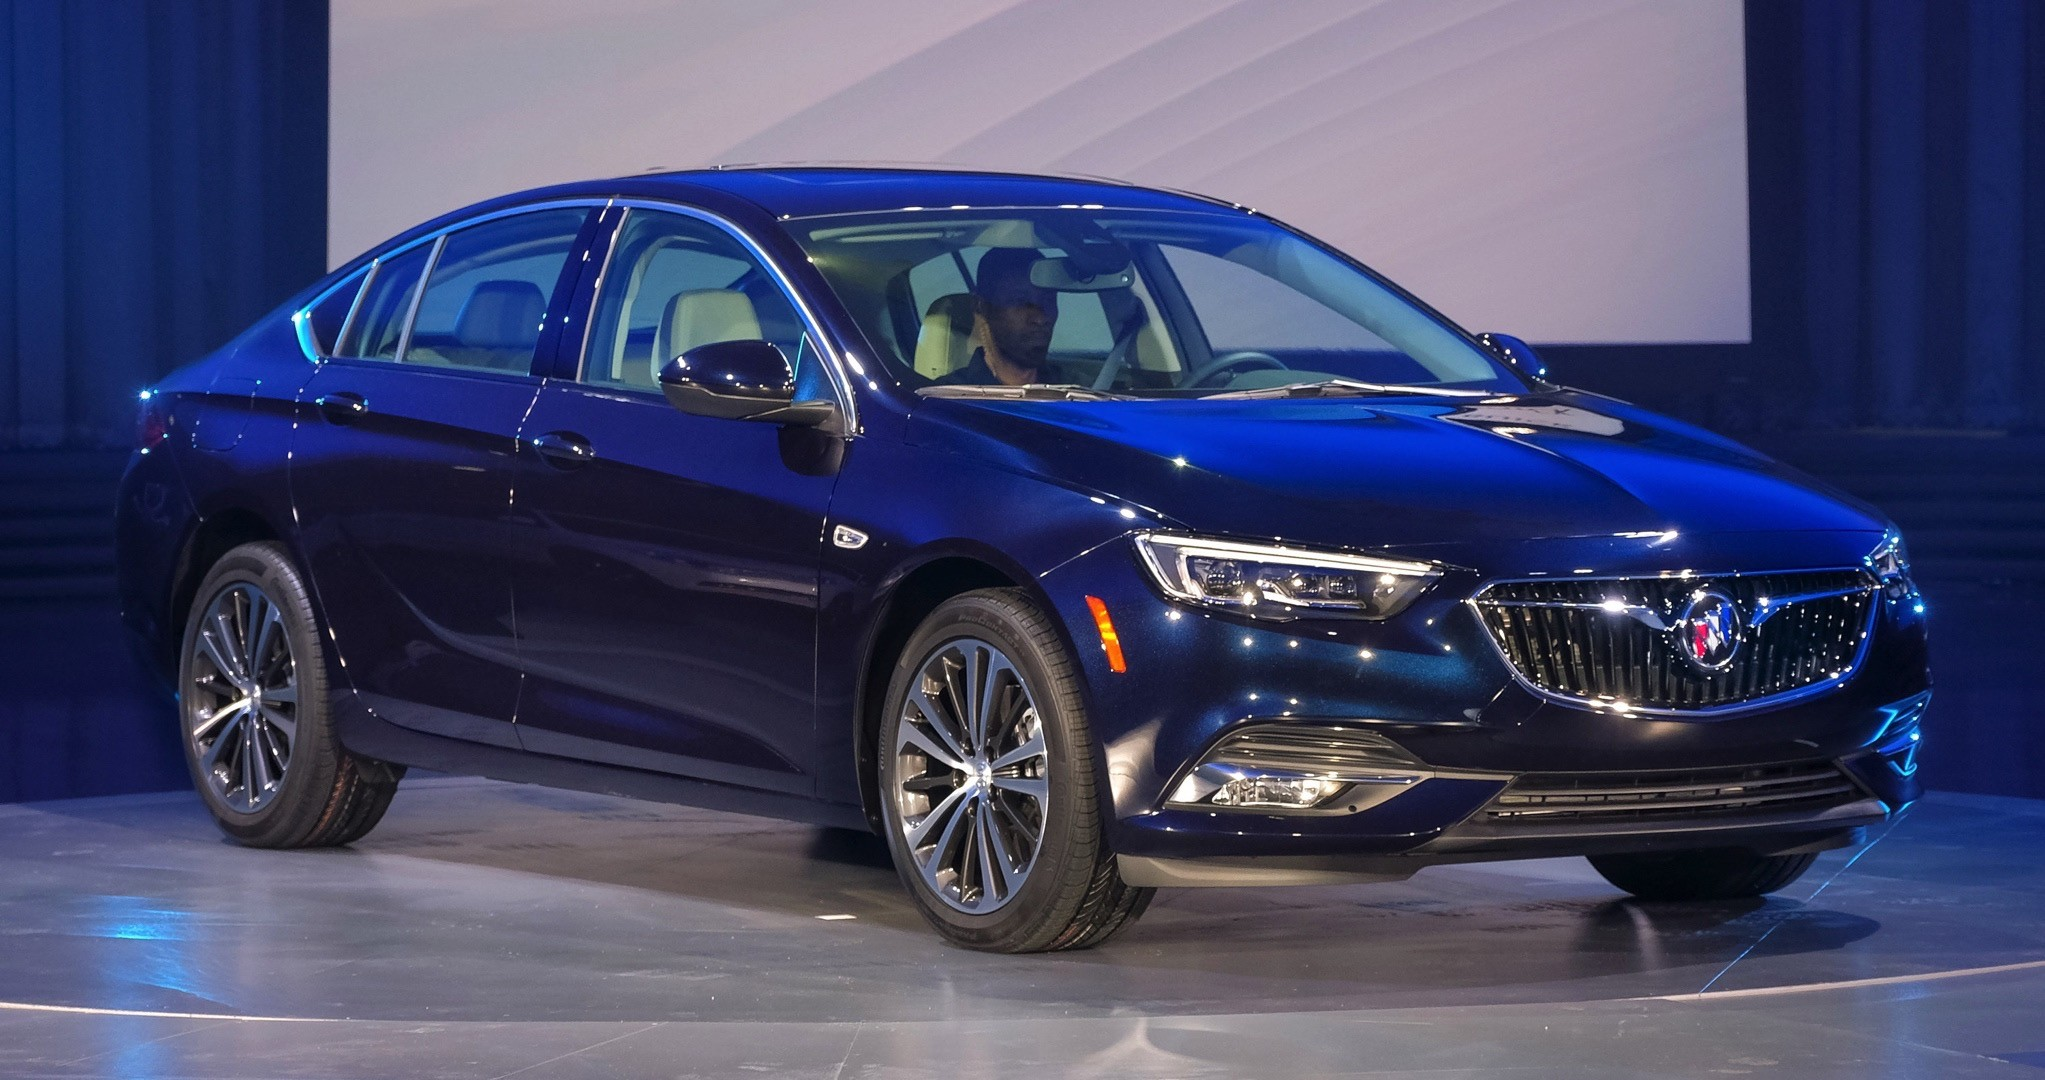 2018 buick regal gs confirmed with n a v6 engine by buick. Black Bedroom Furniture Sets. Home Design Ideas